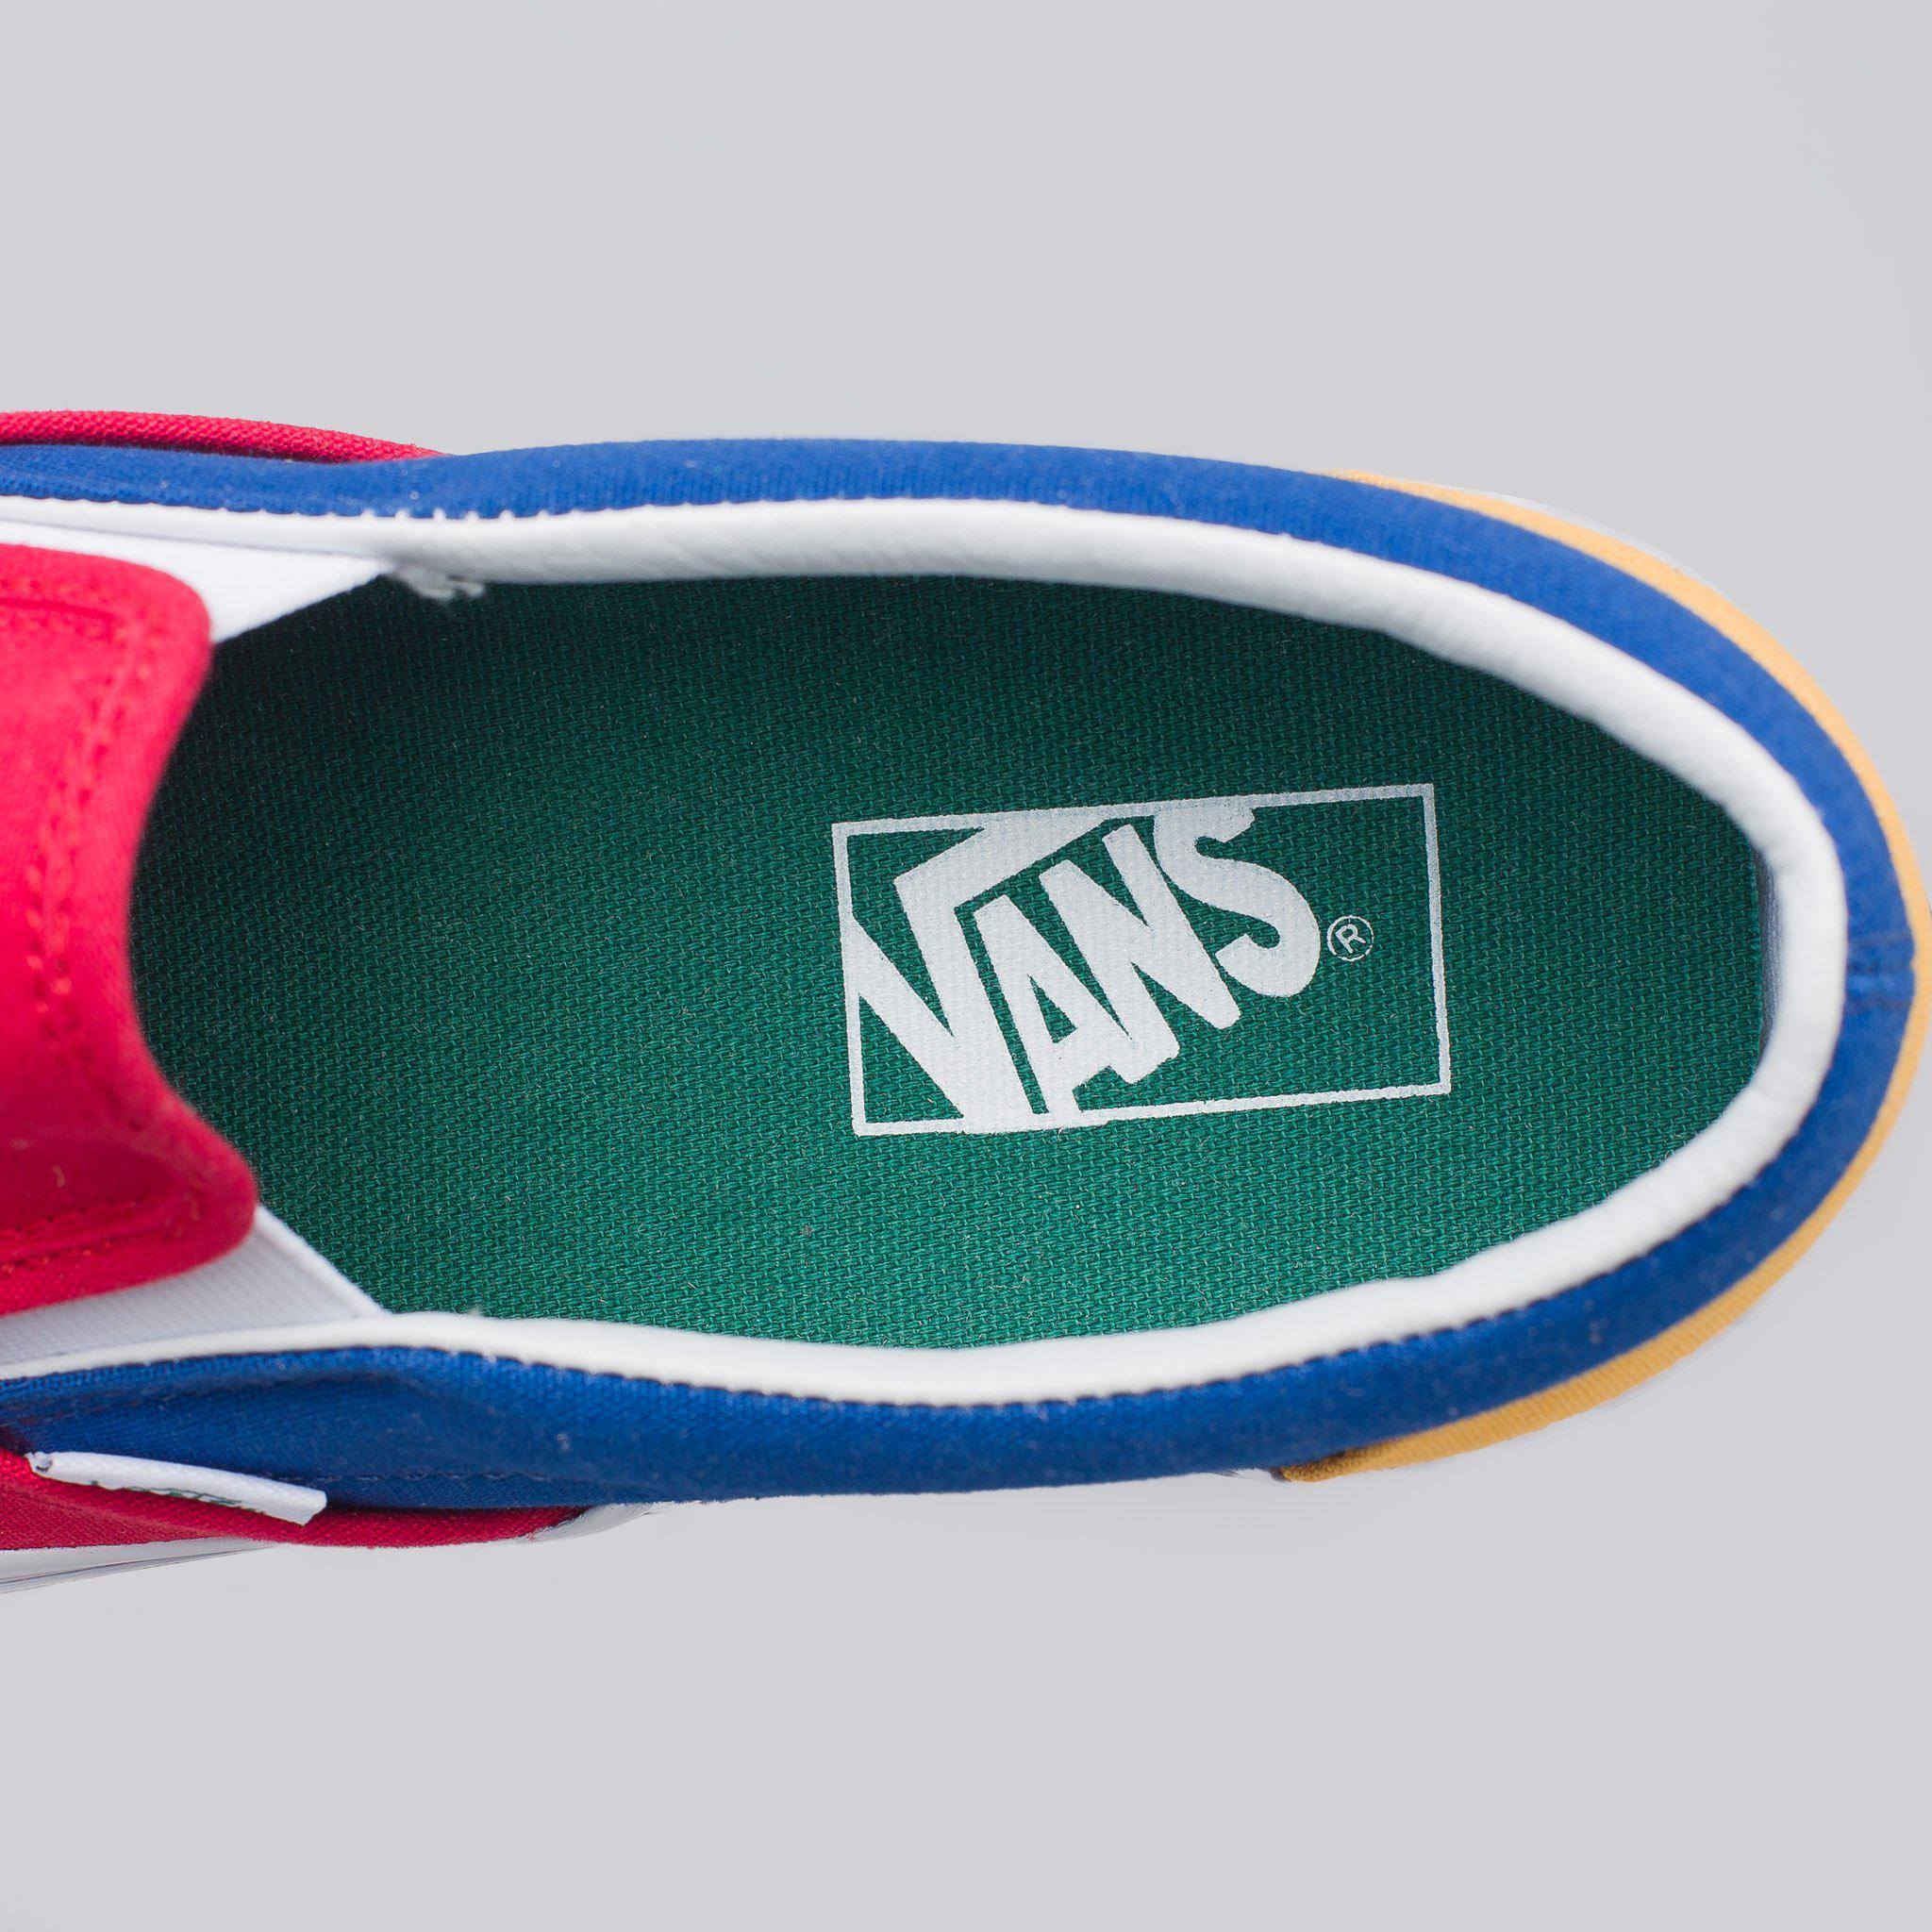 vans green blue yellow